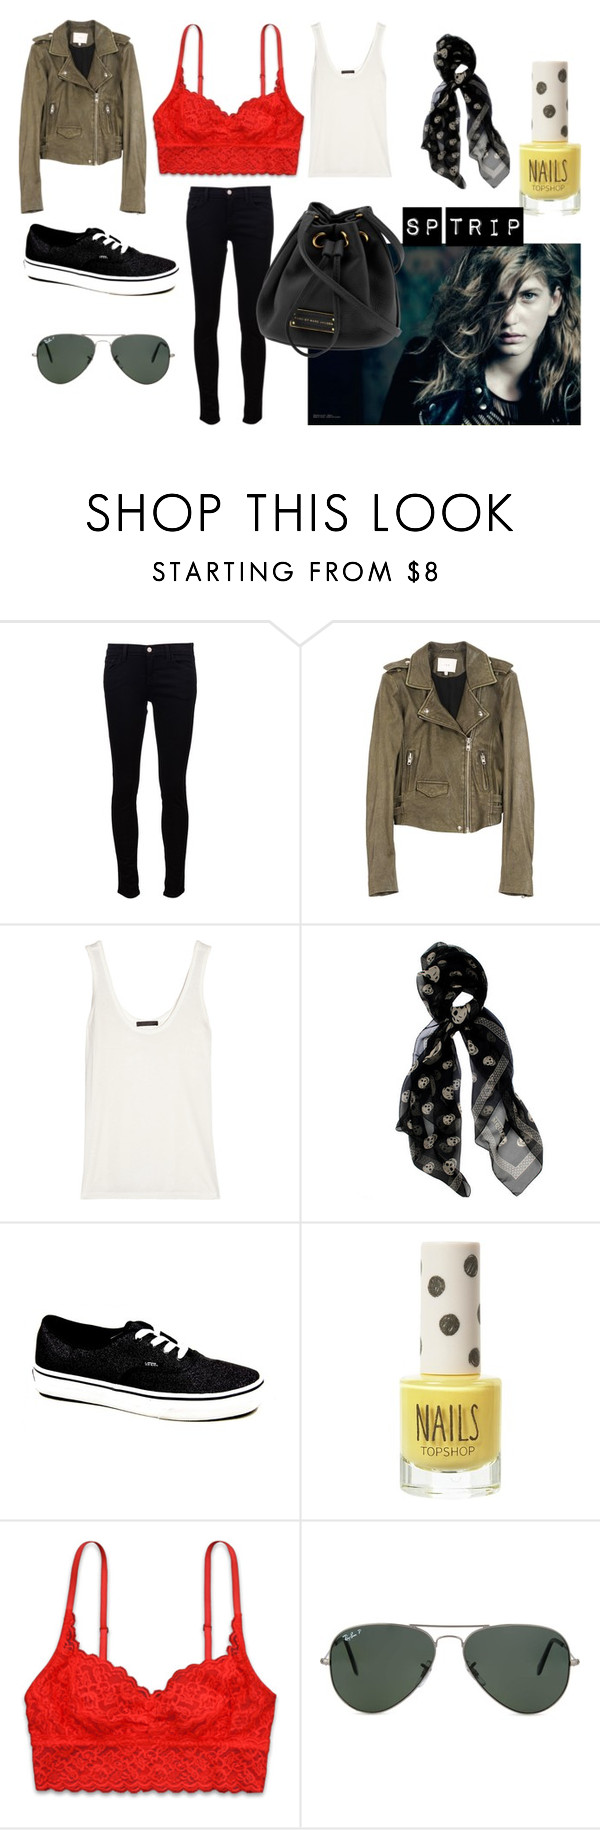 """""""Sp trip"""" by anaunderground on Polyvore featuring moda, J Brand, The Row, Alexander McQueen, Vans, Marc by Marc Jacobs, Topshop e Ray-Ban"""